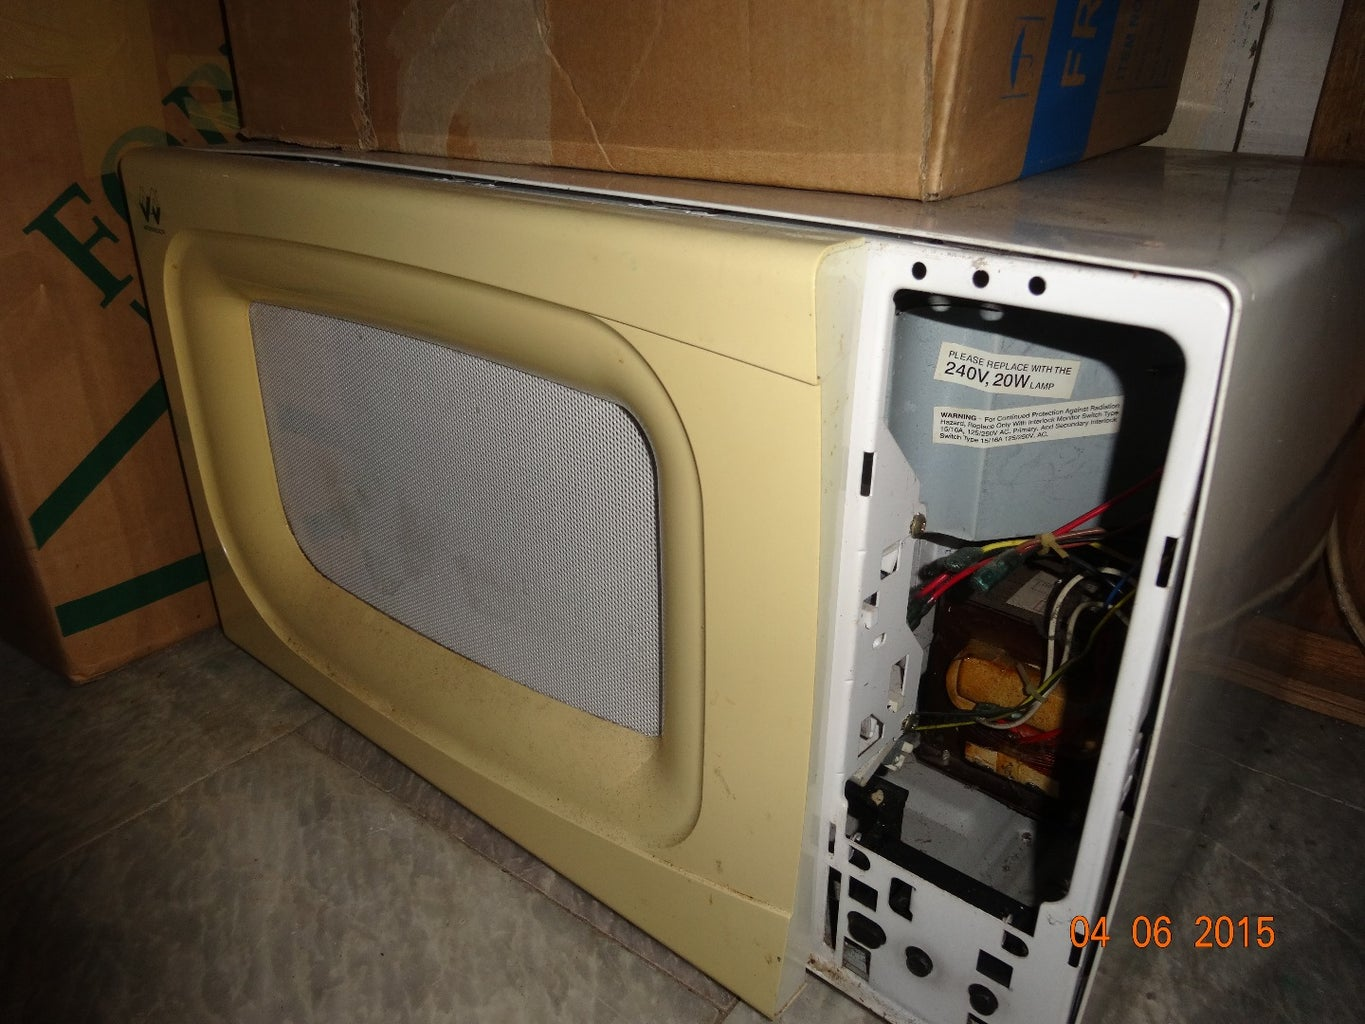 Disassembling the Oven